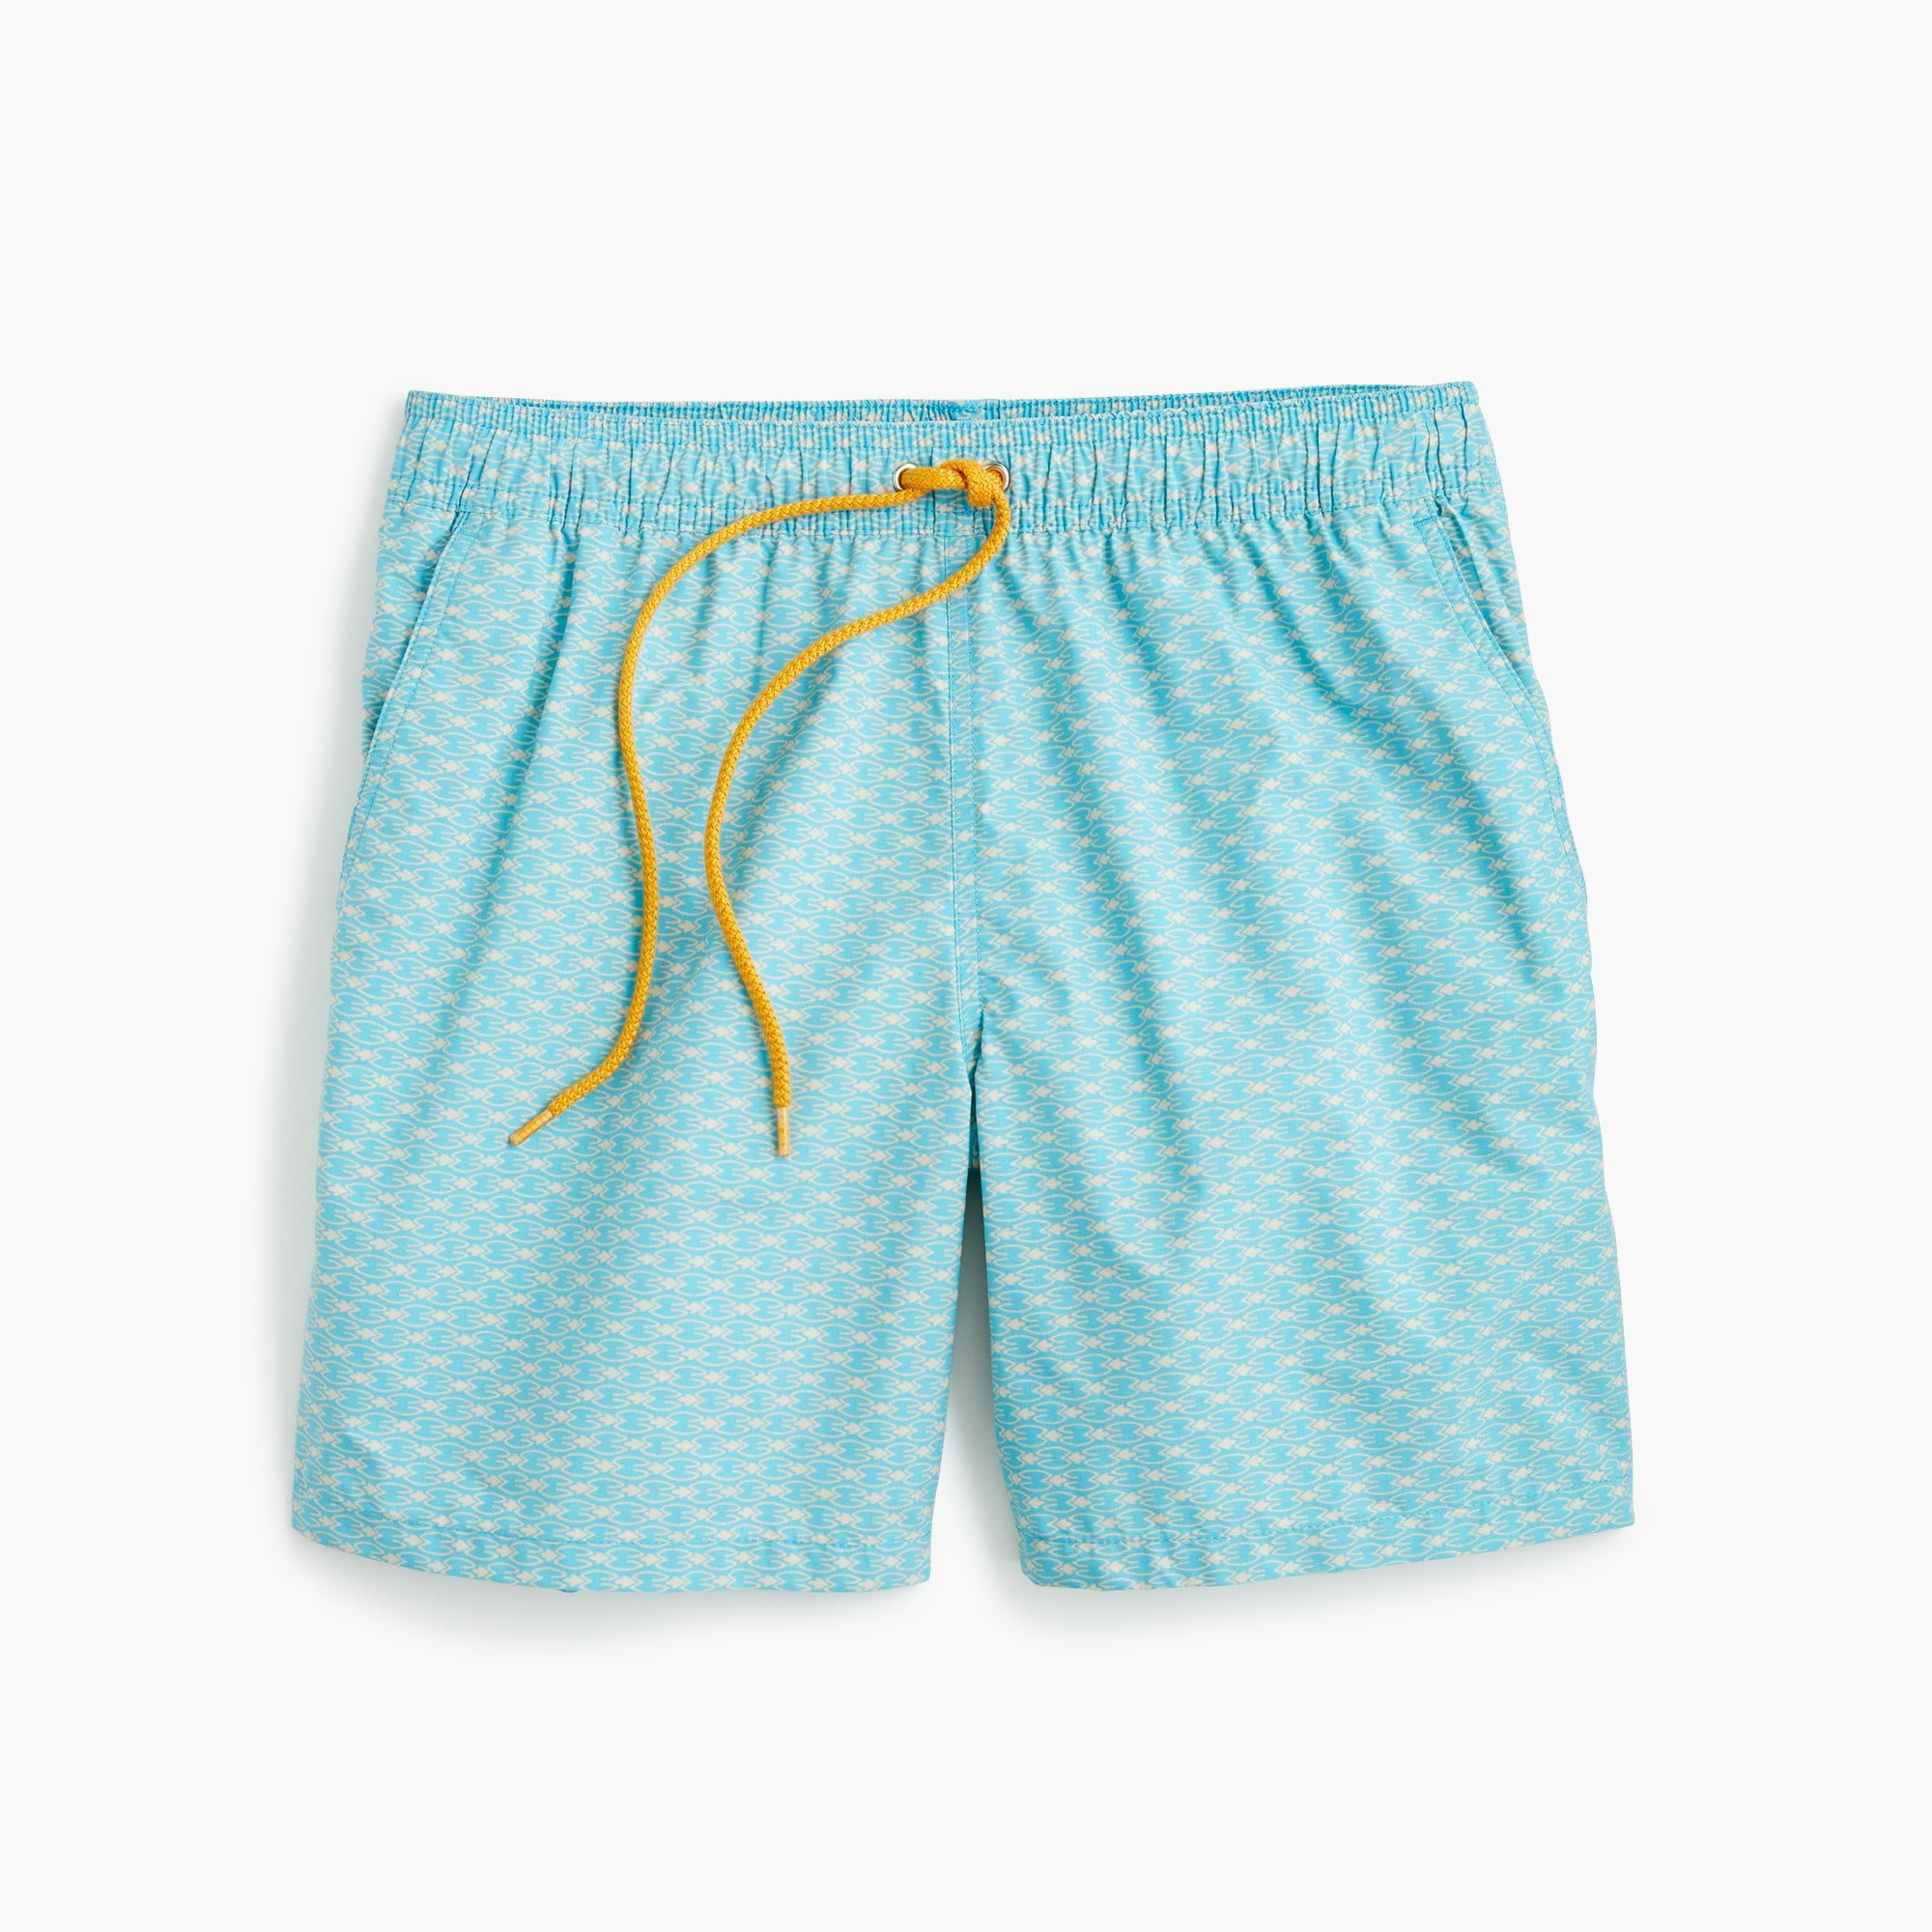 "6"" swim trunk in turquoise arrow print"